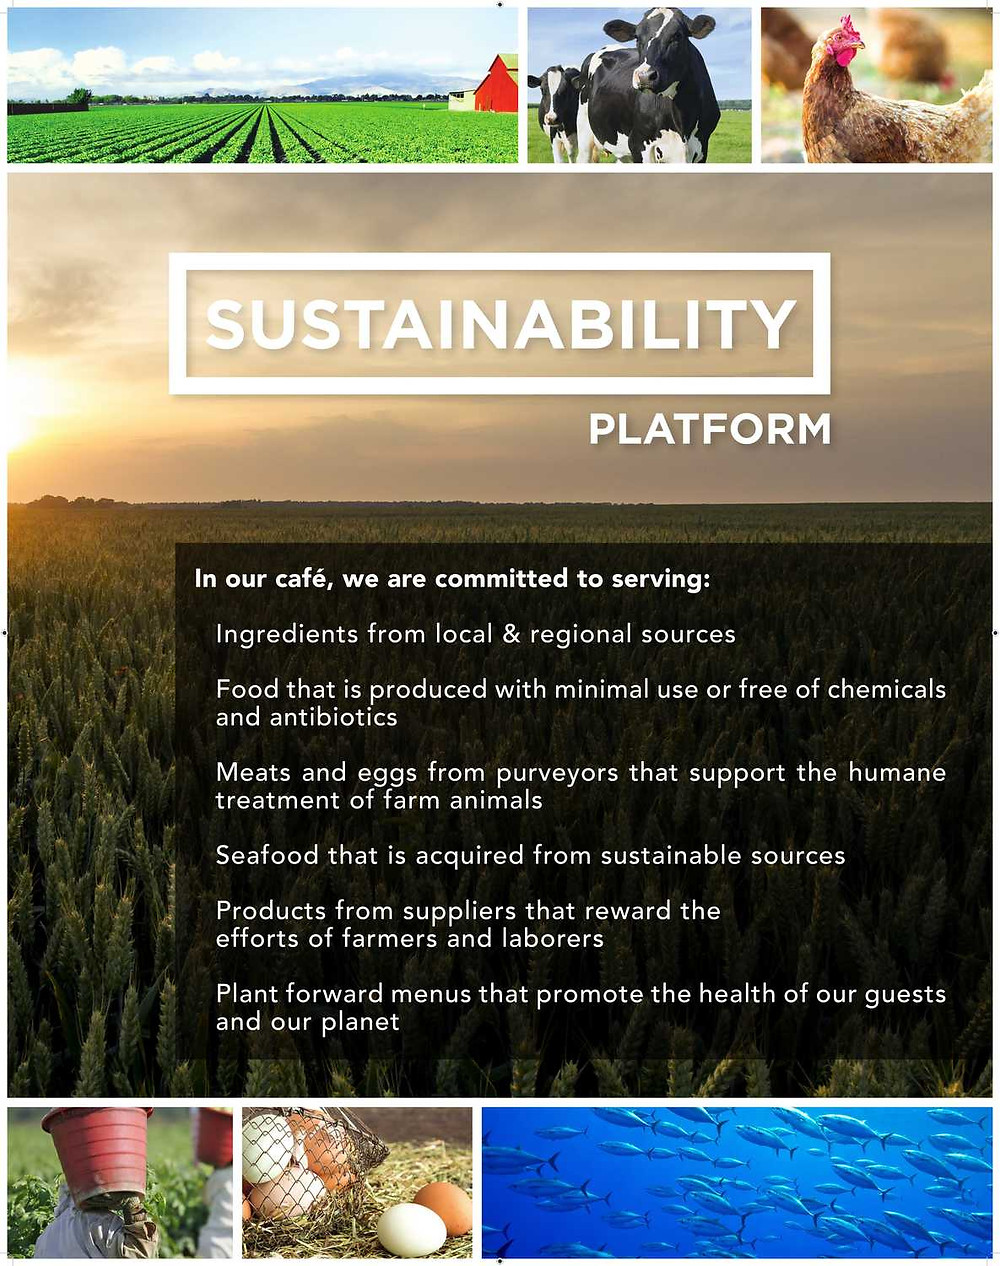 Sustainability platform on UNF campus is committed to serving ingredients from local and regional sources, food that is produced with minimal use or free of chemicals and antibiotics, meats and eggs from purveyors that support the humane treatment of farm animals, seafood that is acquired from sustainable sources, products from suppliers that reward the efforts of farmers and laborers, plant forward menus that promote the health of our guests and our planet.